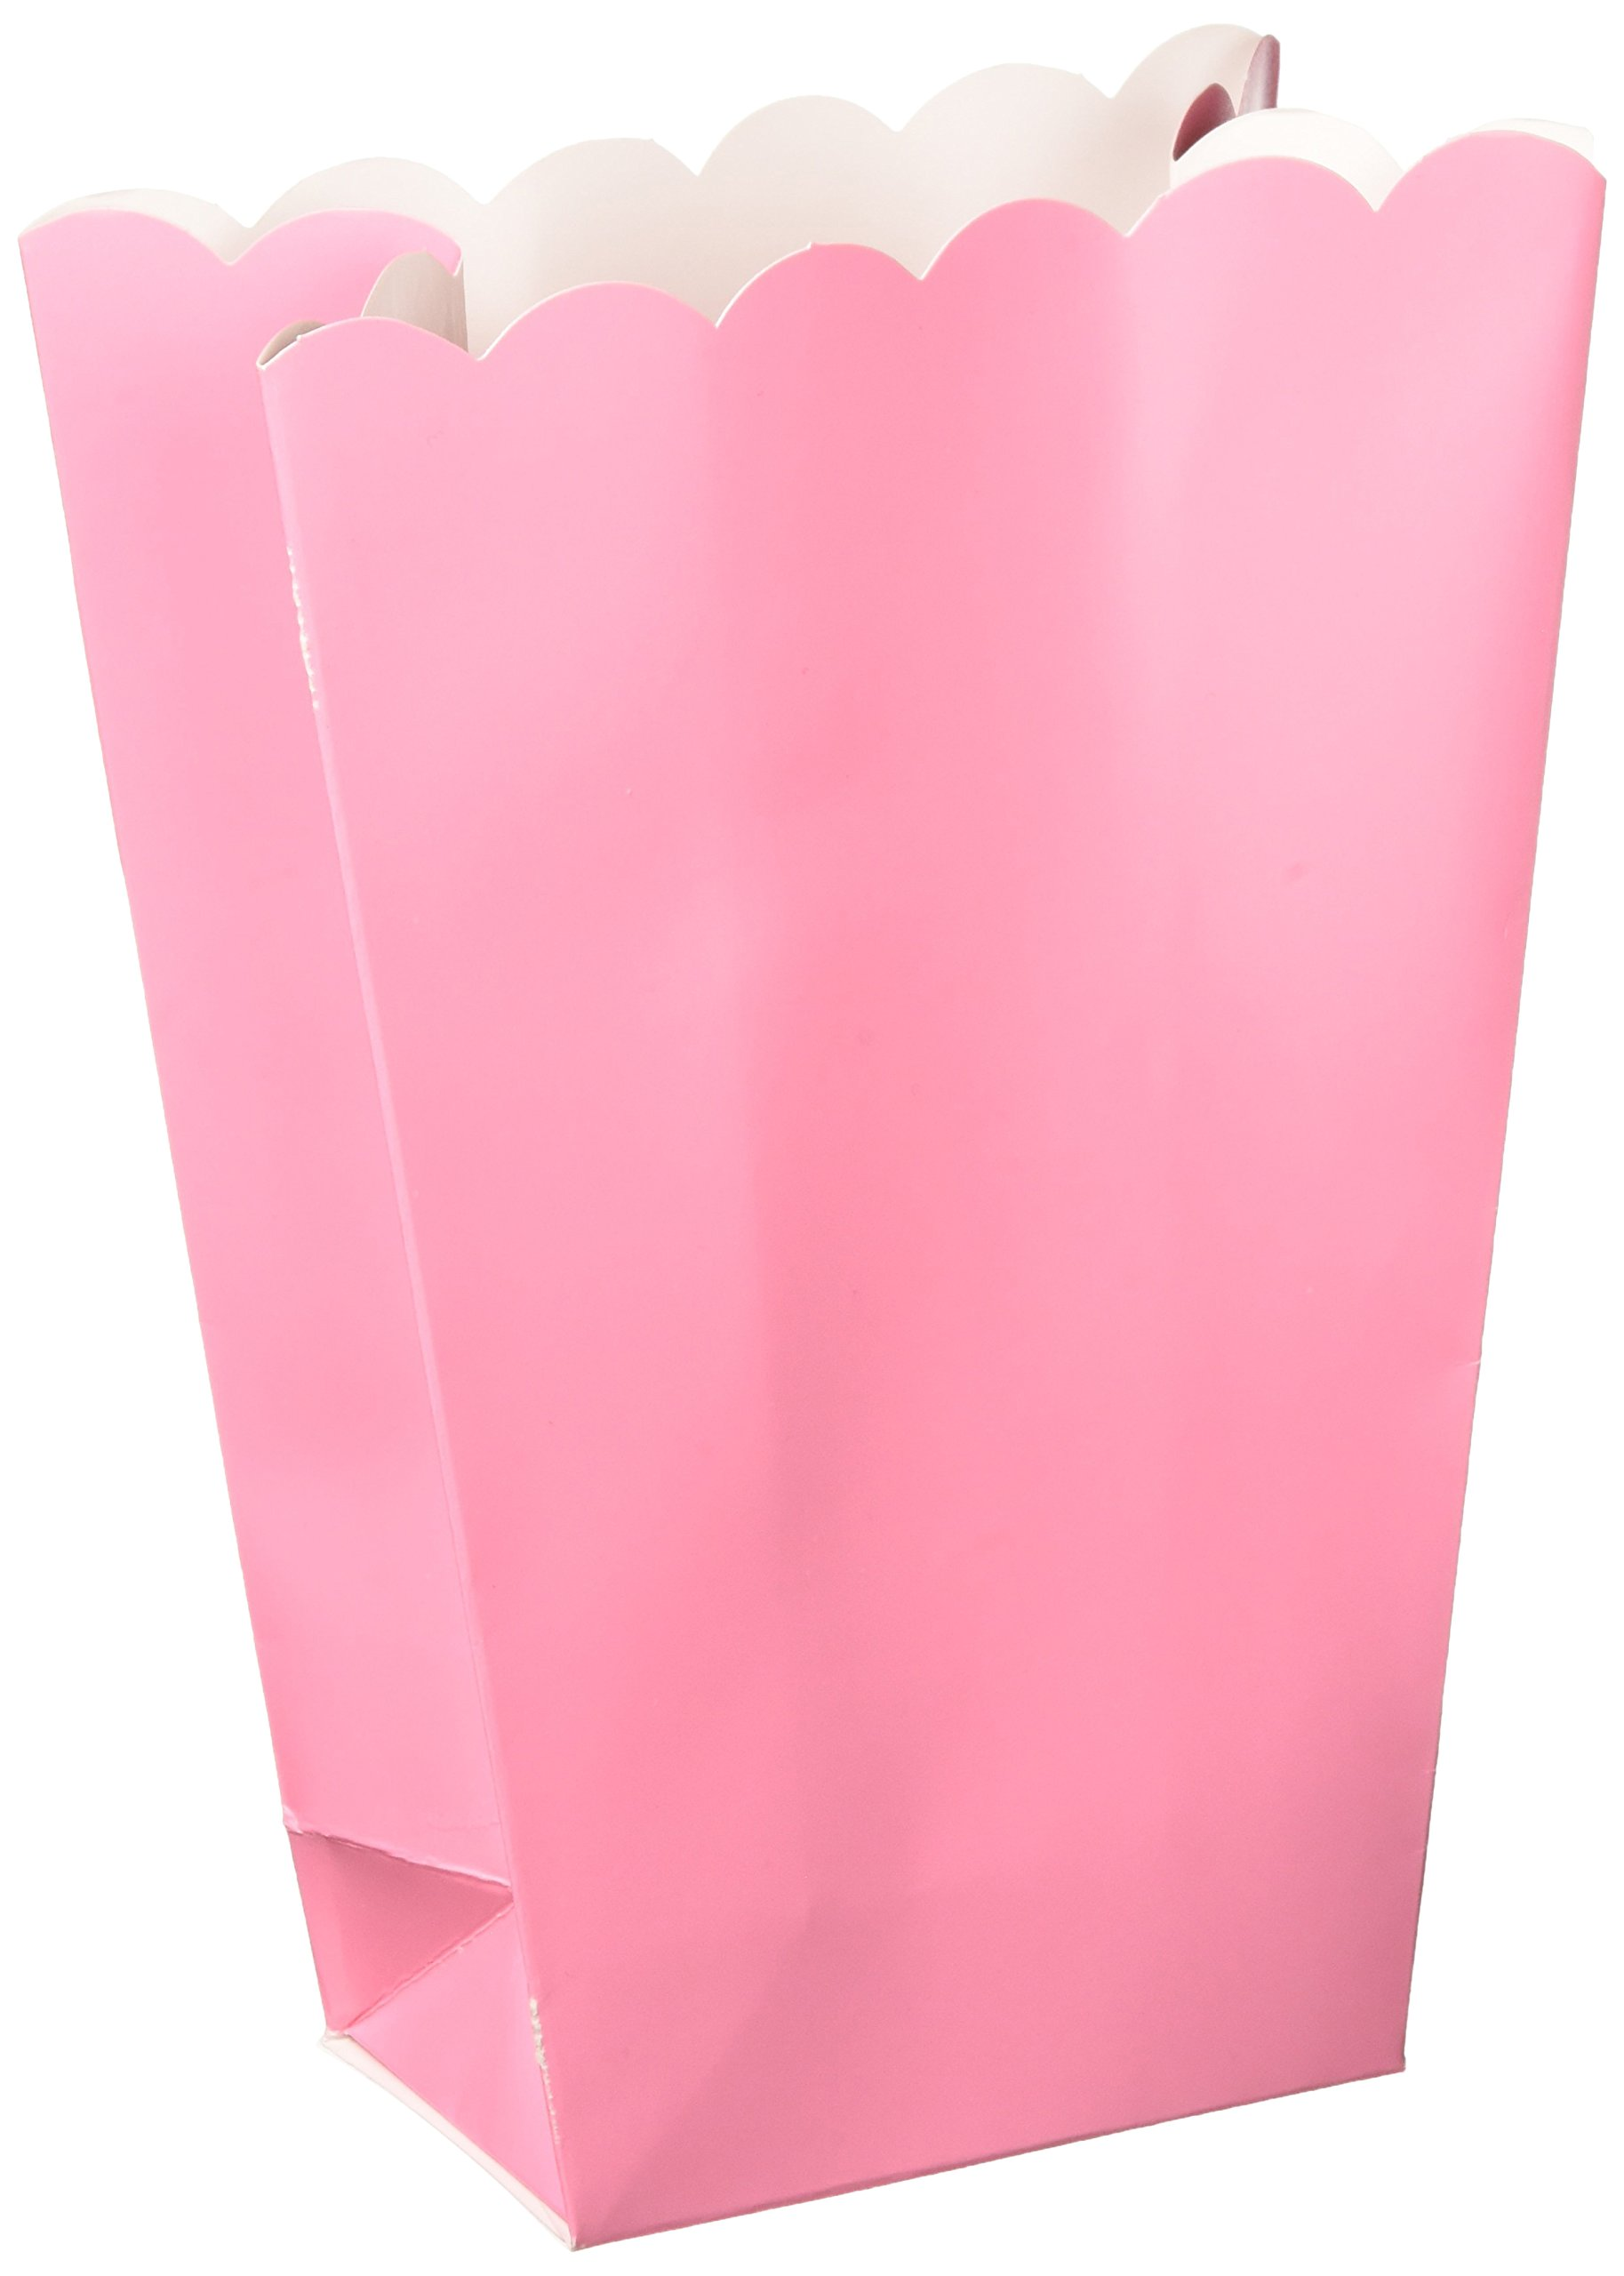 Amscan Party Ready Large Popcorn Favour Box, Baby Pink, Paper, 7'' X 5'', Pack of 10 Childrens-Party-Favor-Sets by Amscan